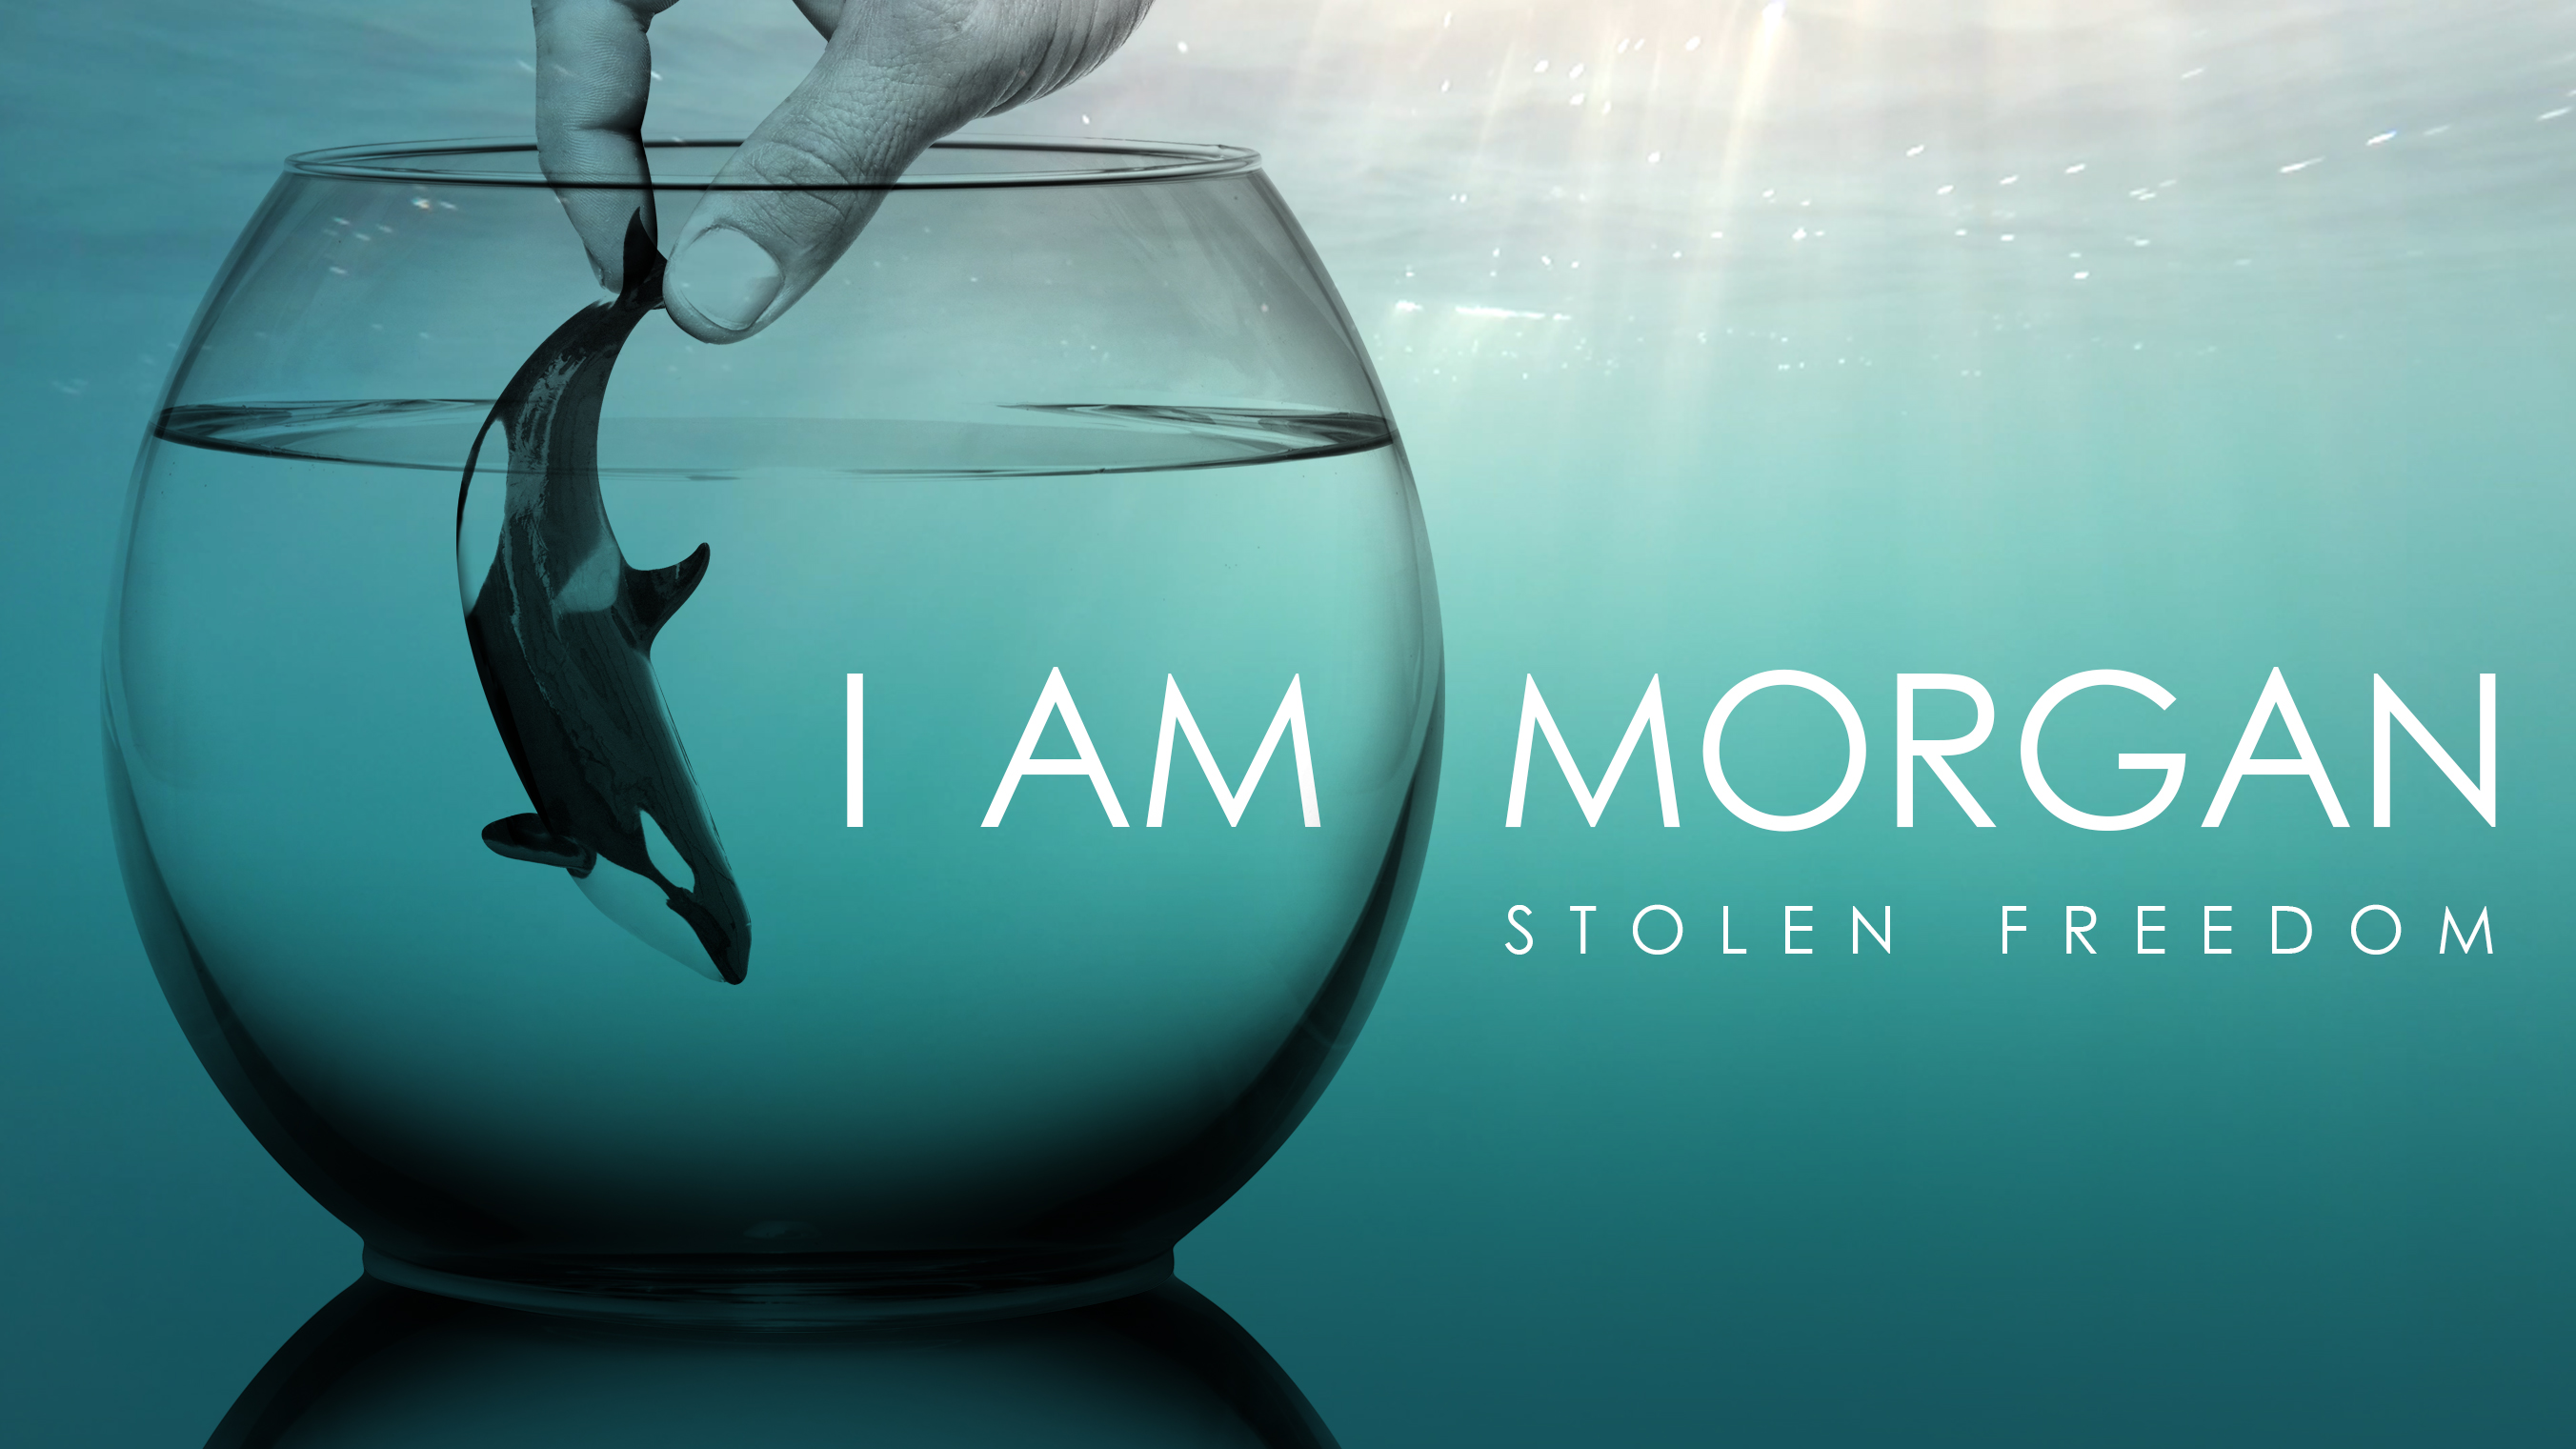 I AM MORGAN - STOLEN FREEDOM - a 4 minute video